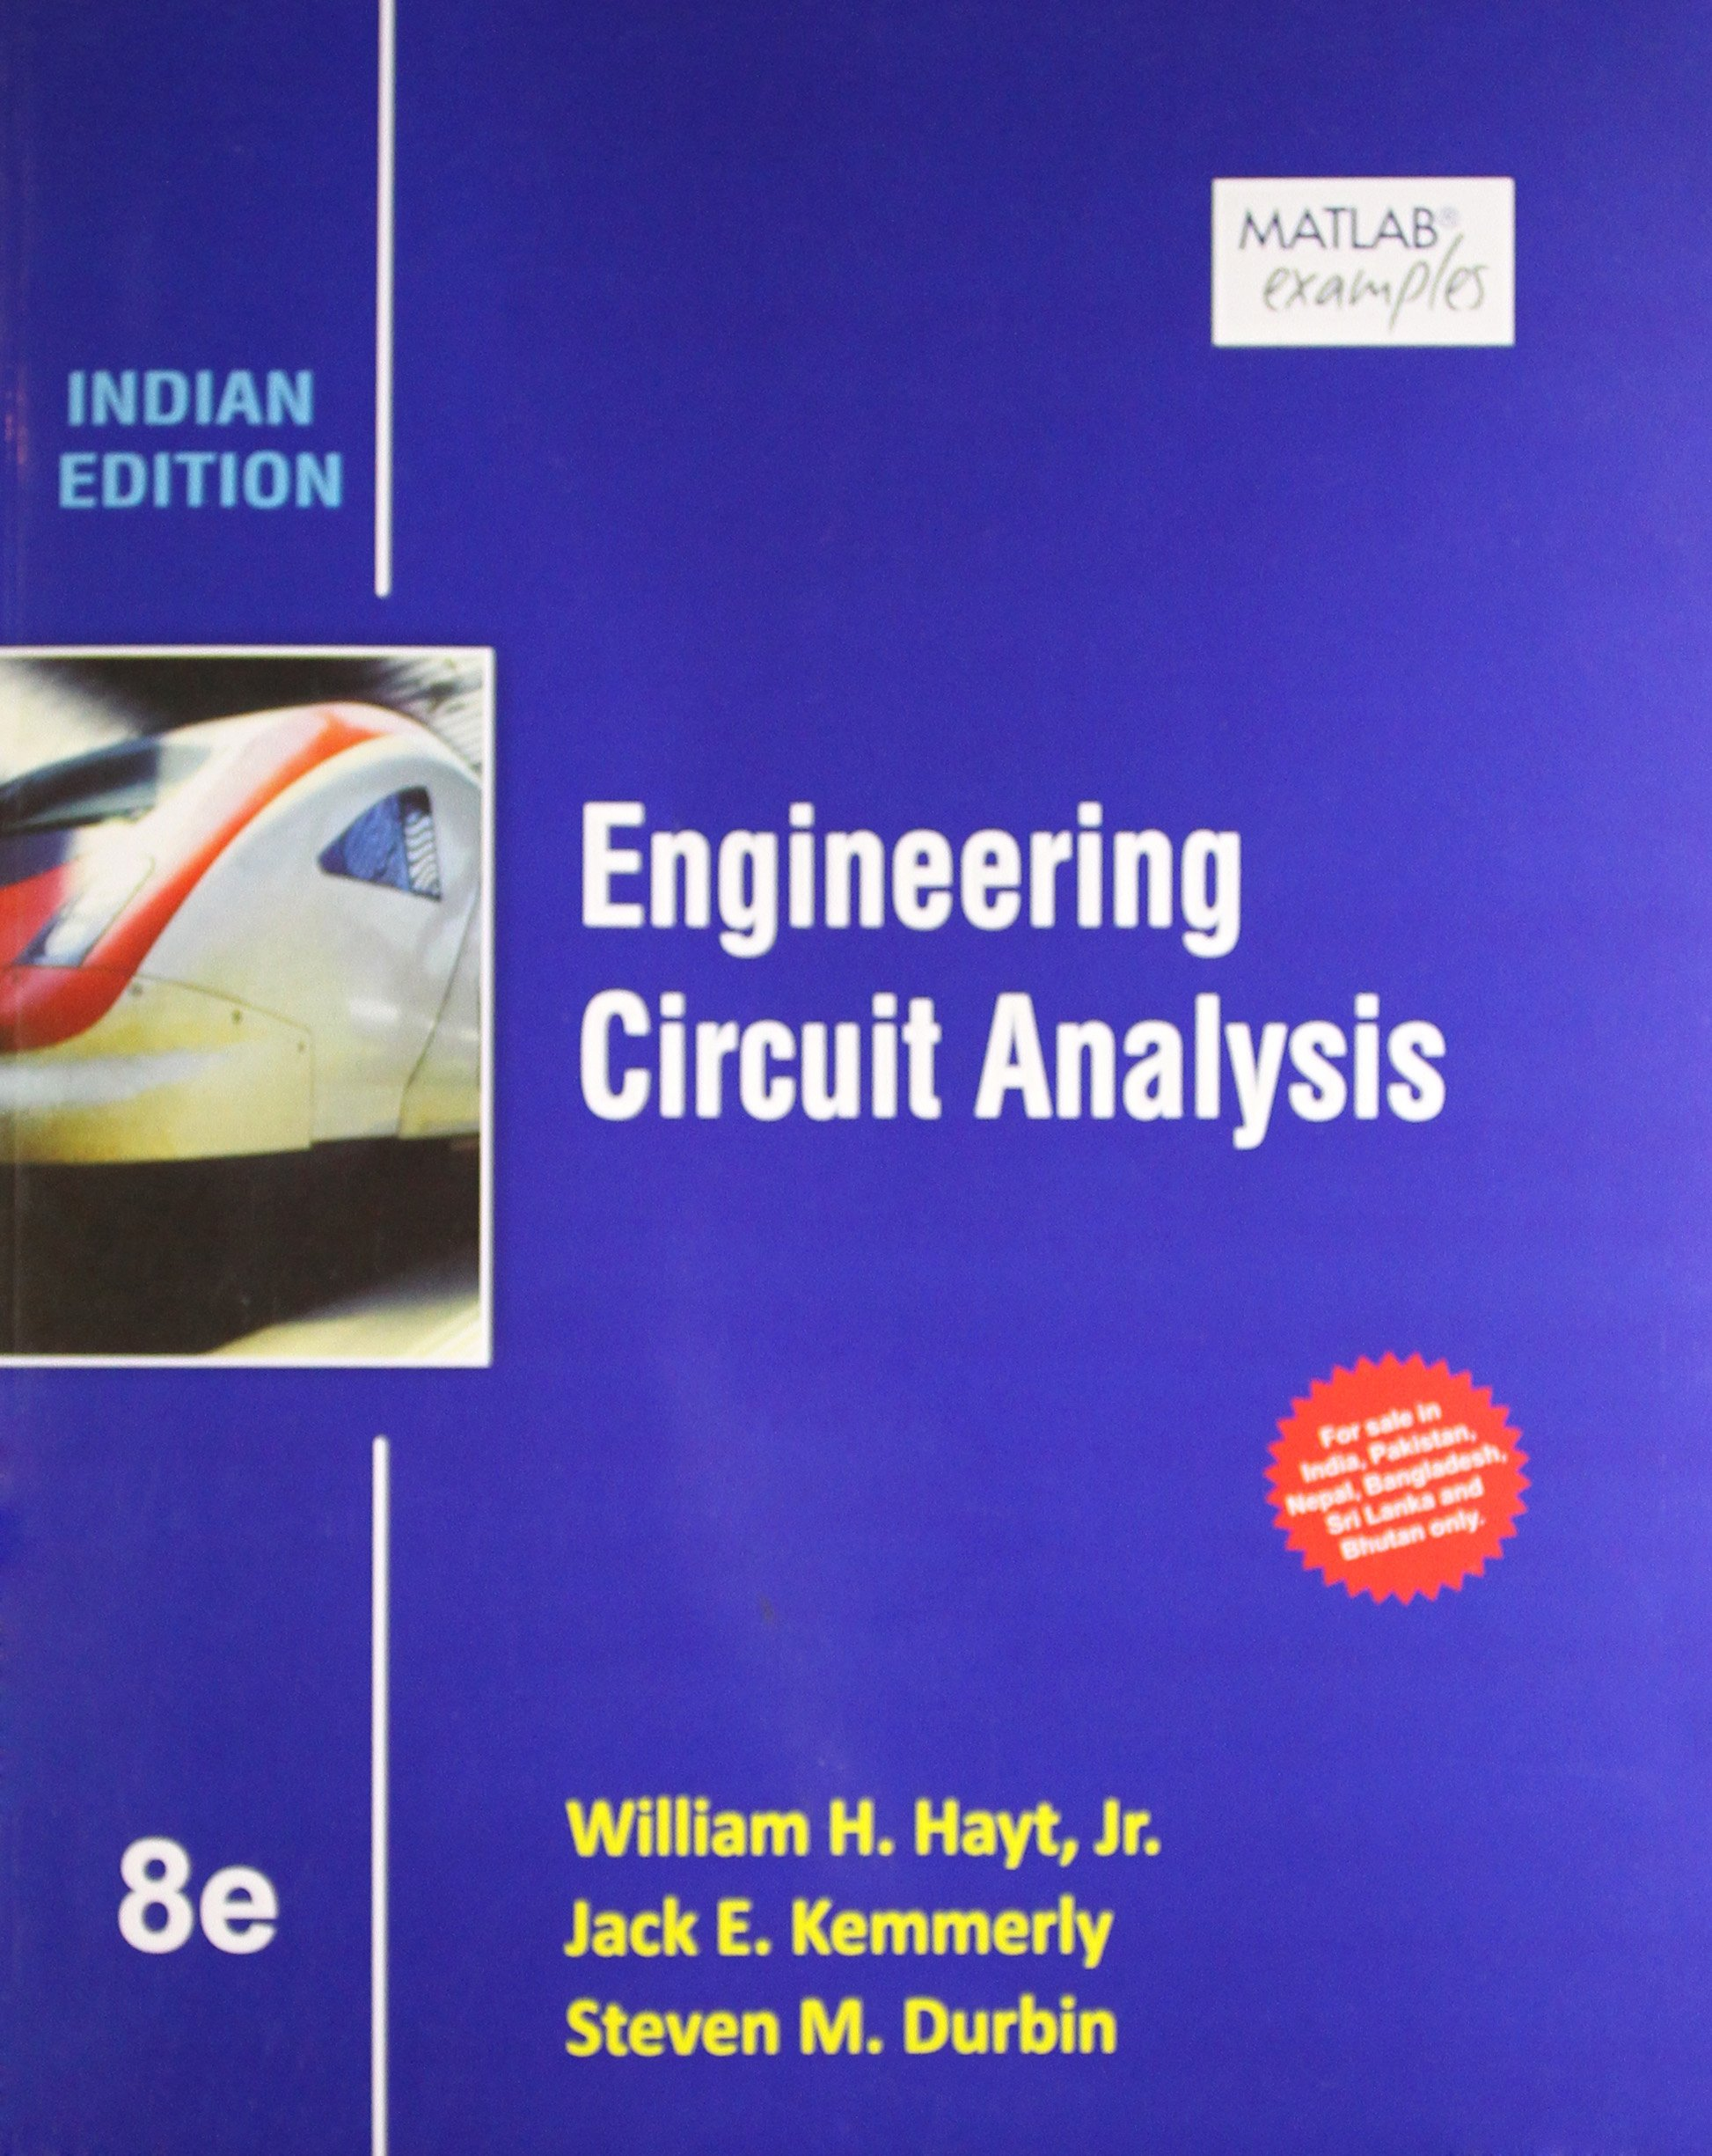 Electric Circuit Analysis Pdf